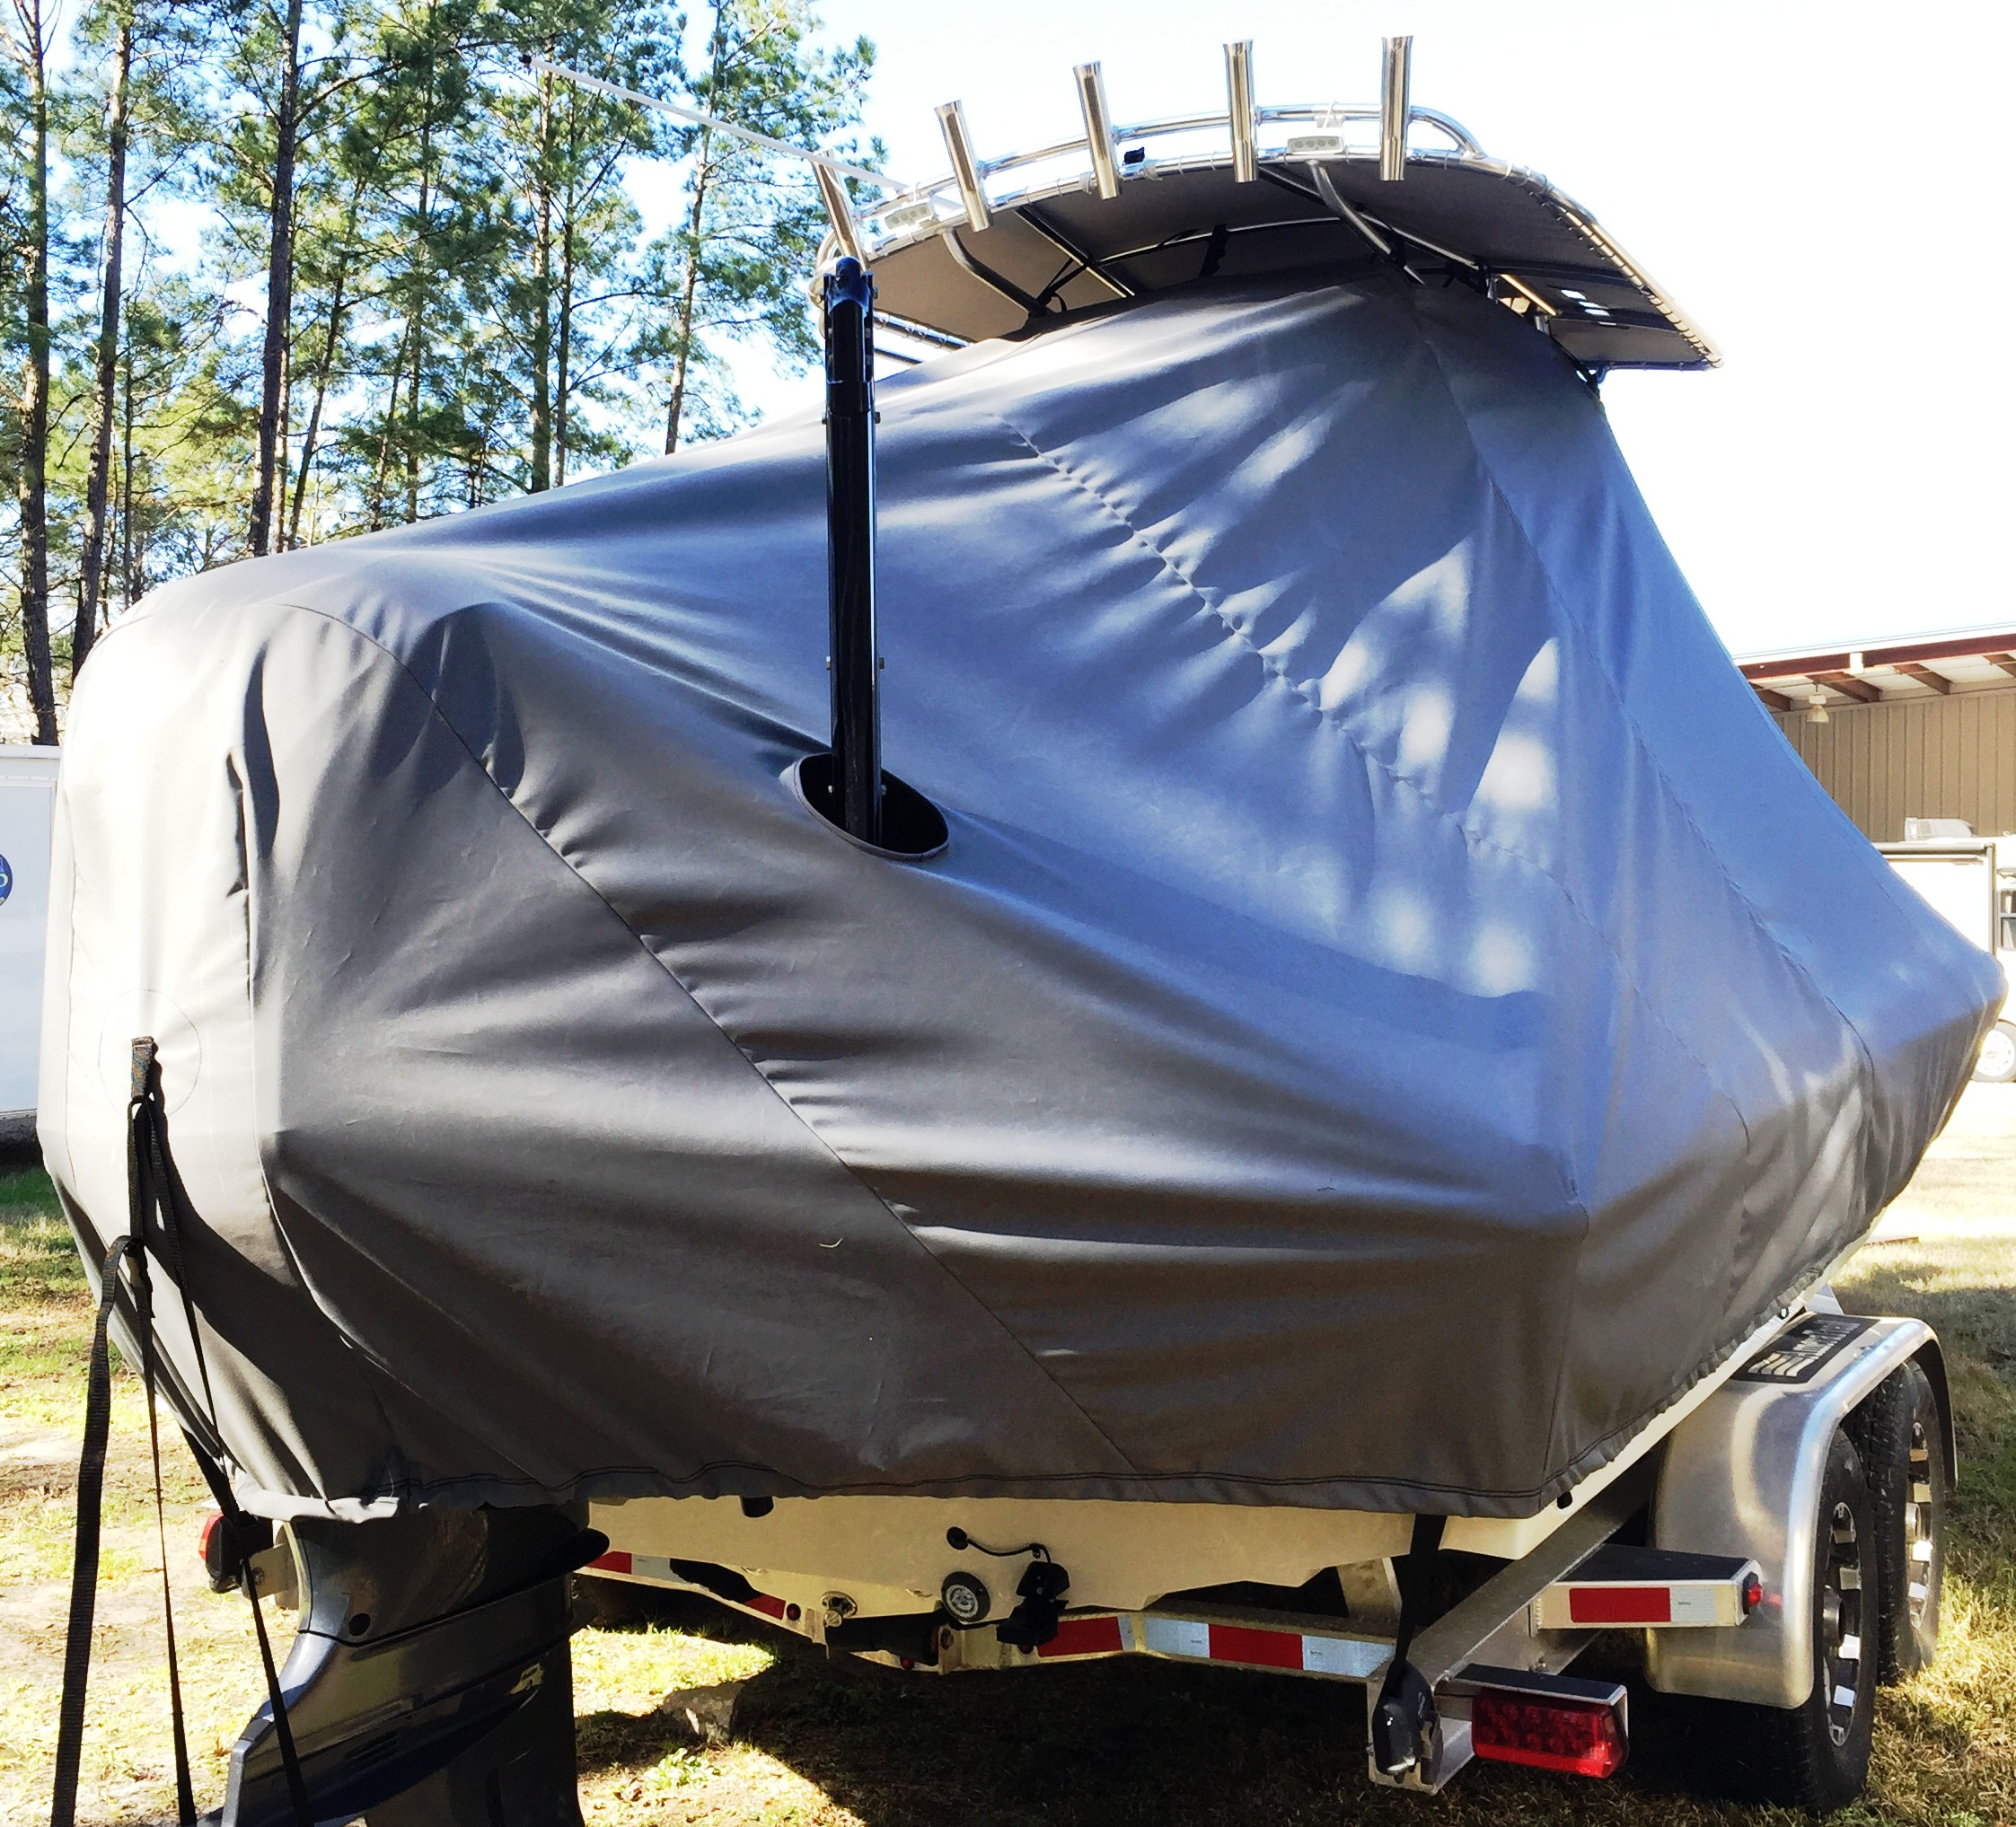 Islamoroda Morado 24, 20xx, TTopCovers™ T-Top boat cover Power Pole Through Cover, starboard rear